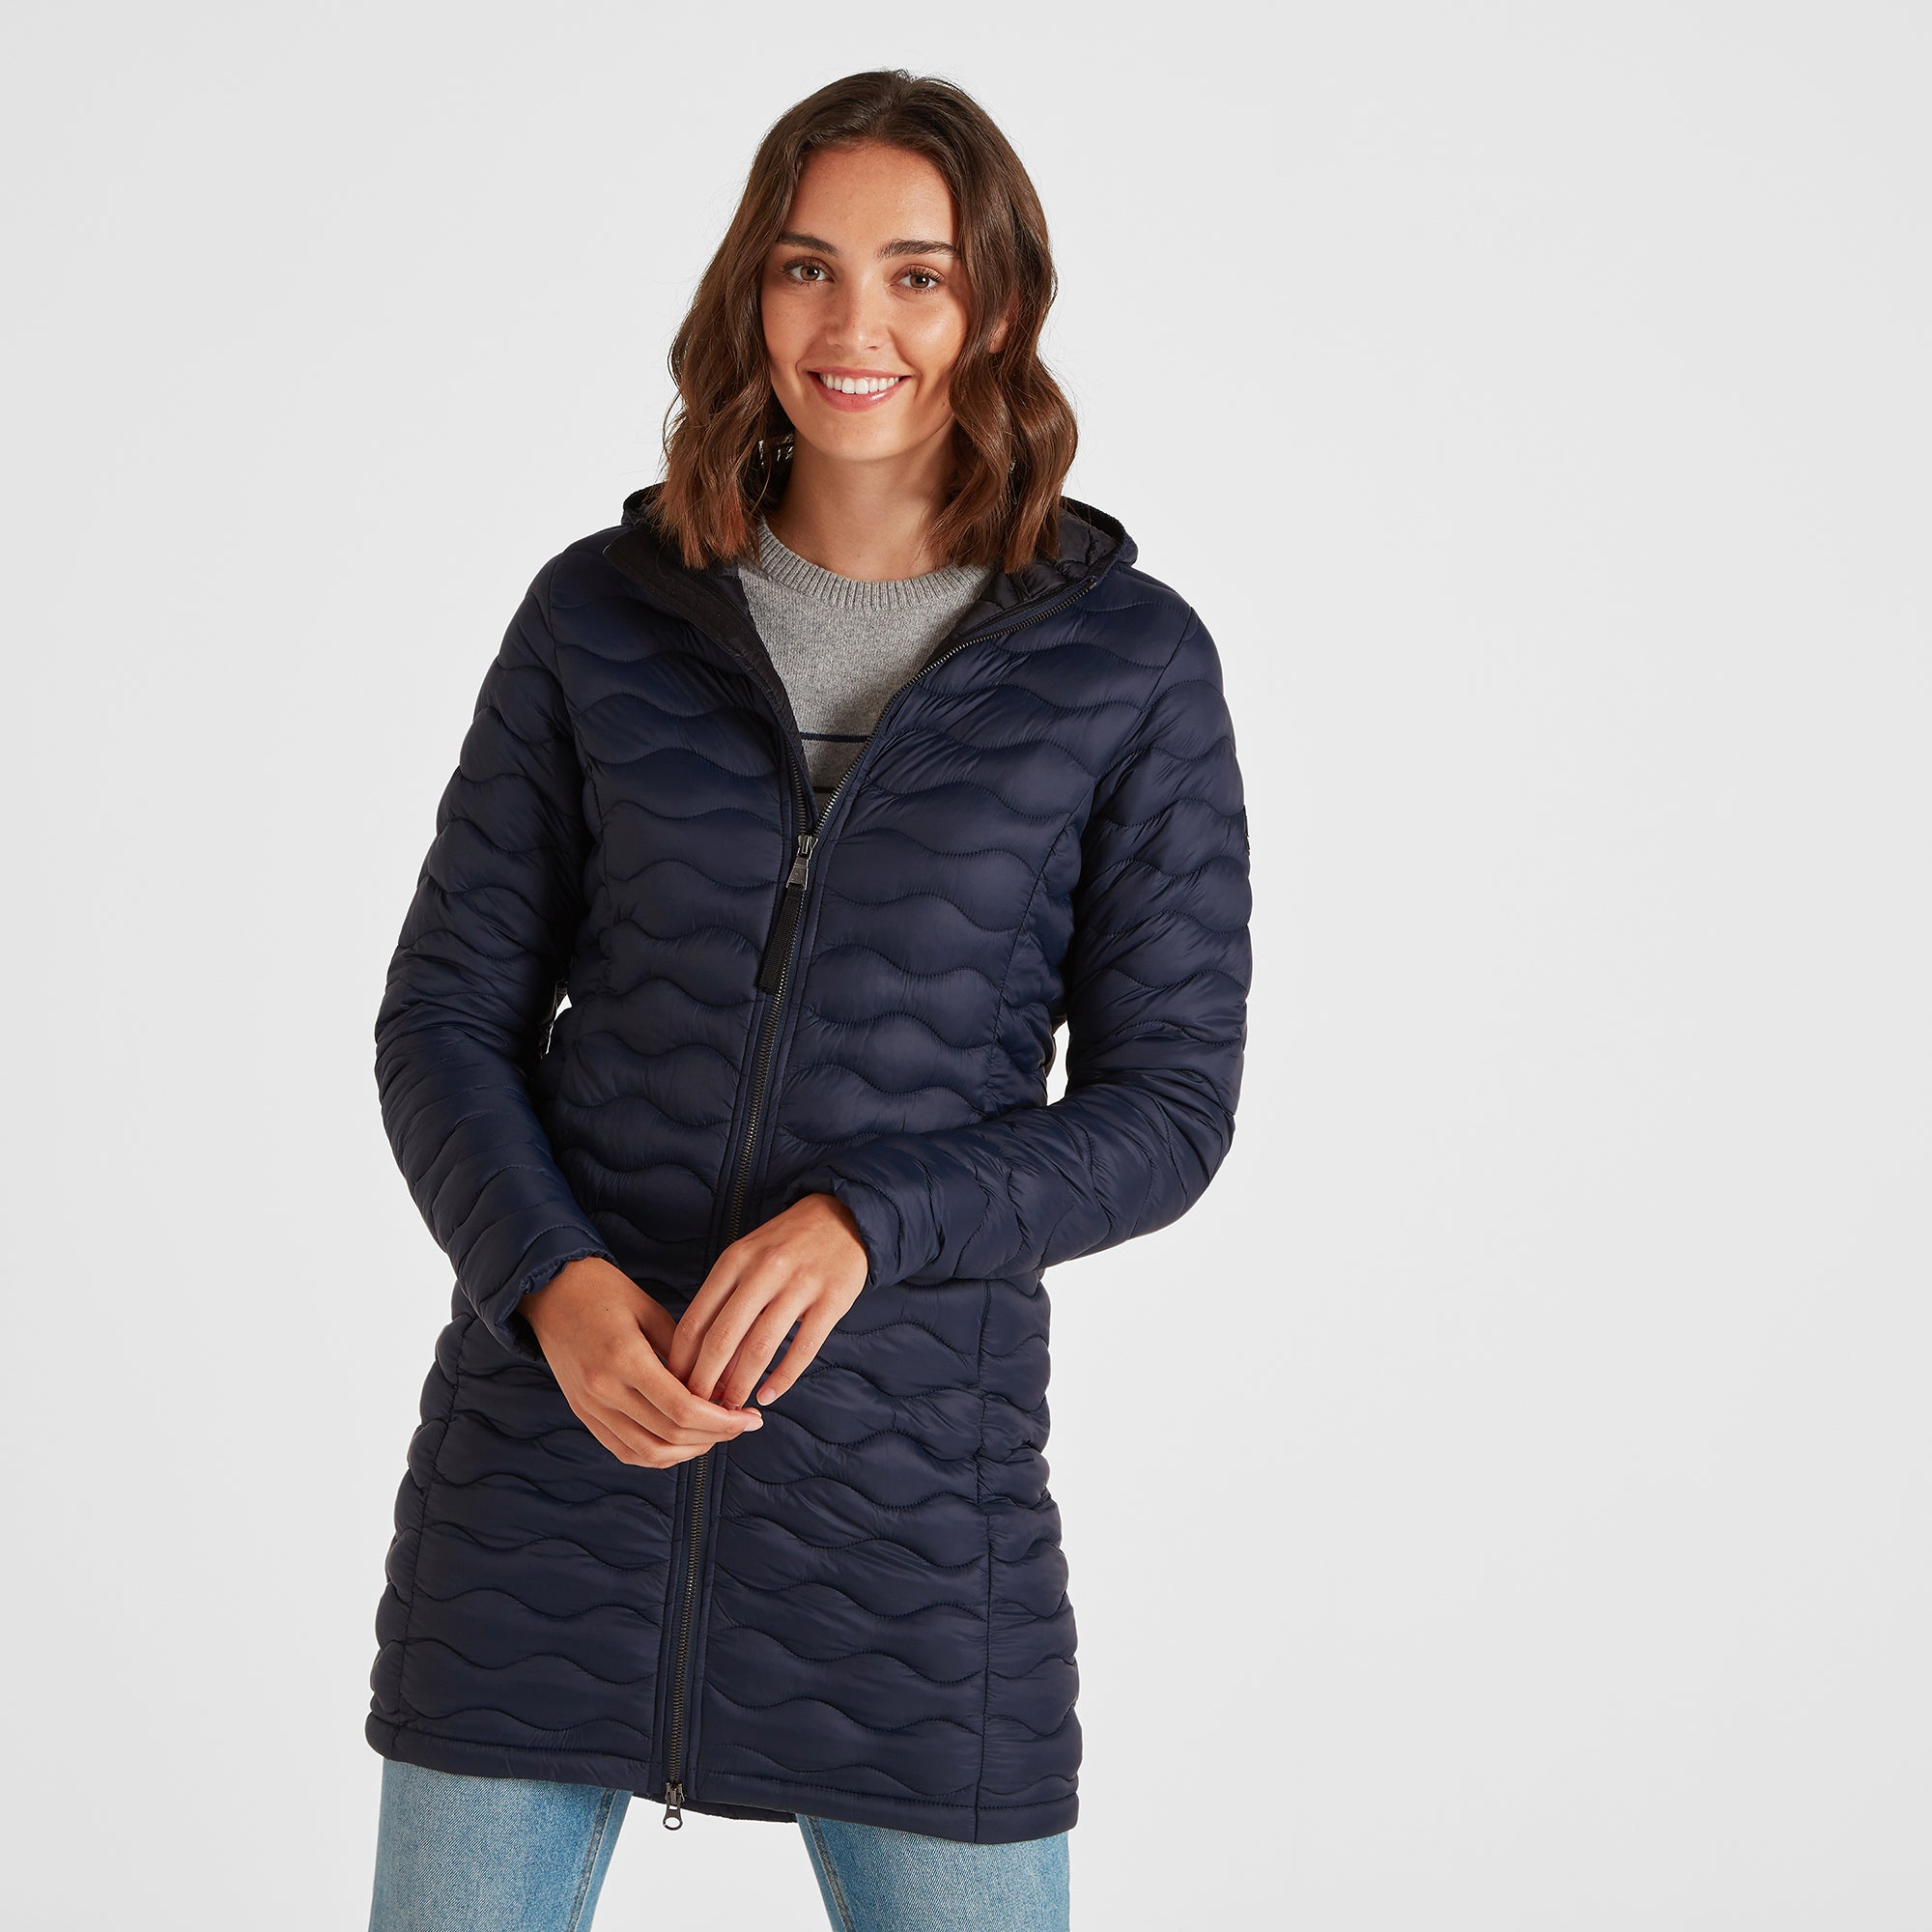 Eastby Womens Thermal Jacket - Dark Indigo